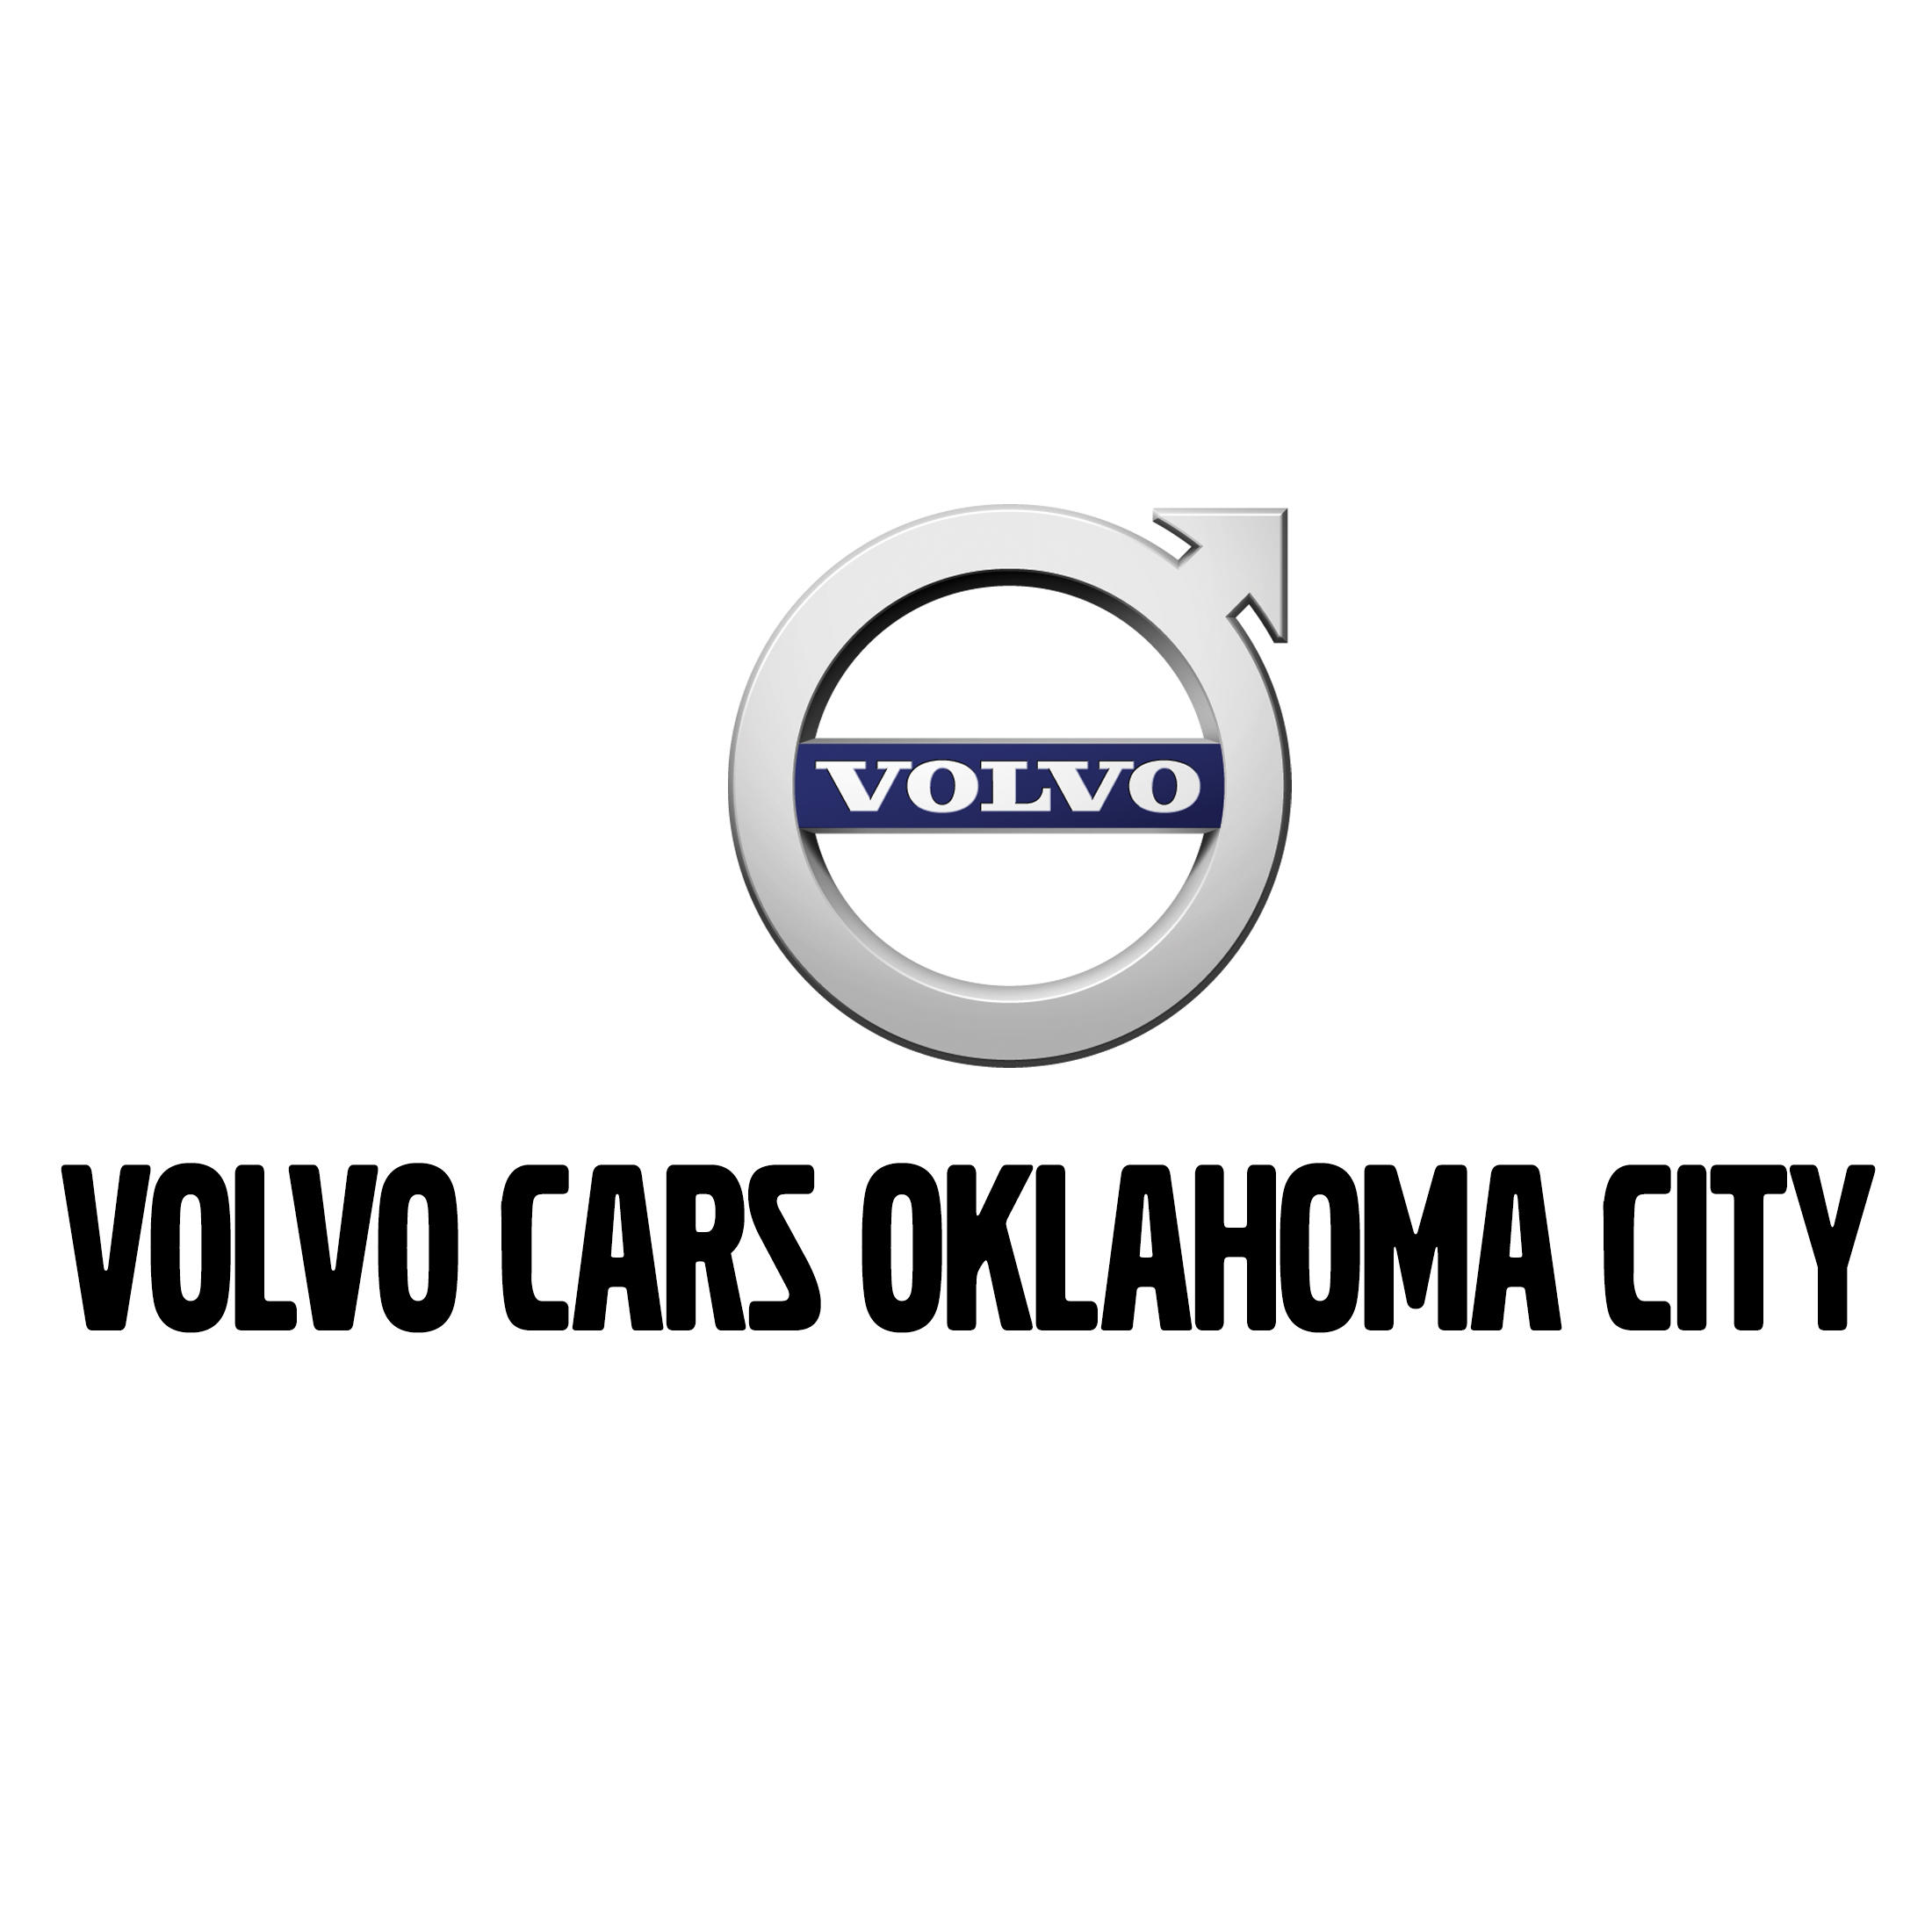 Volvo Cars Oklahoma City